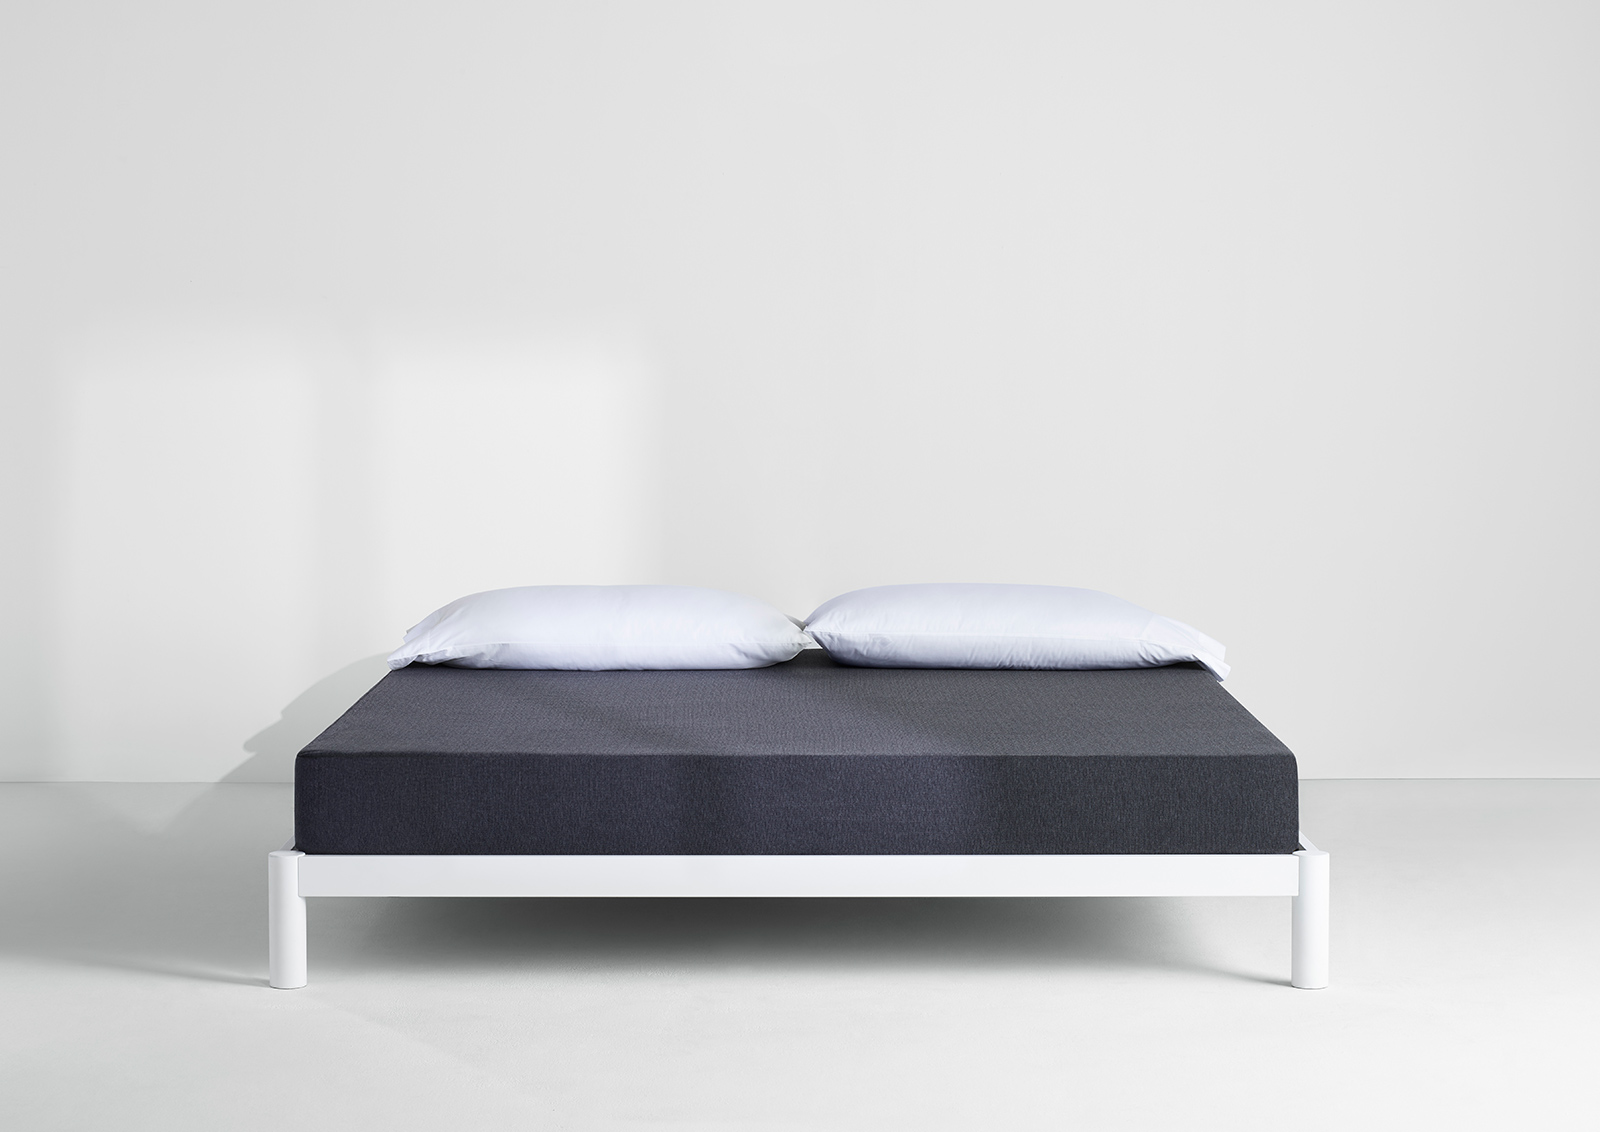 Shop the Casper Essential Online  Free Delivery   Returns   Casper     Casper Essential Mattress  Main